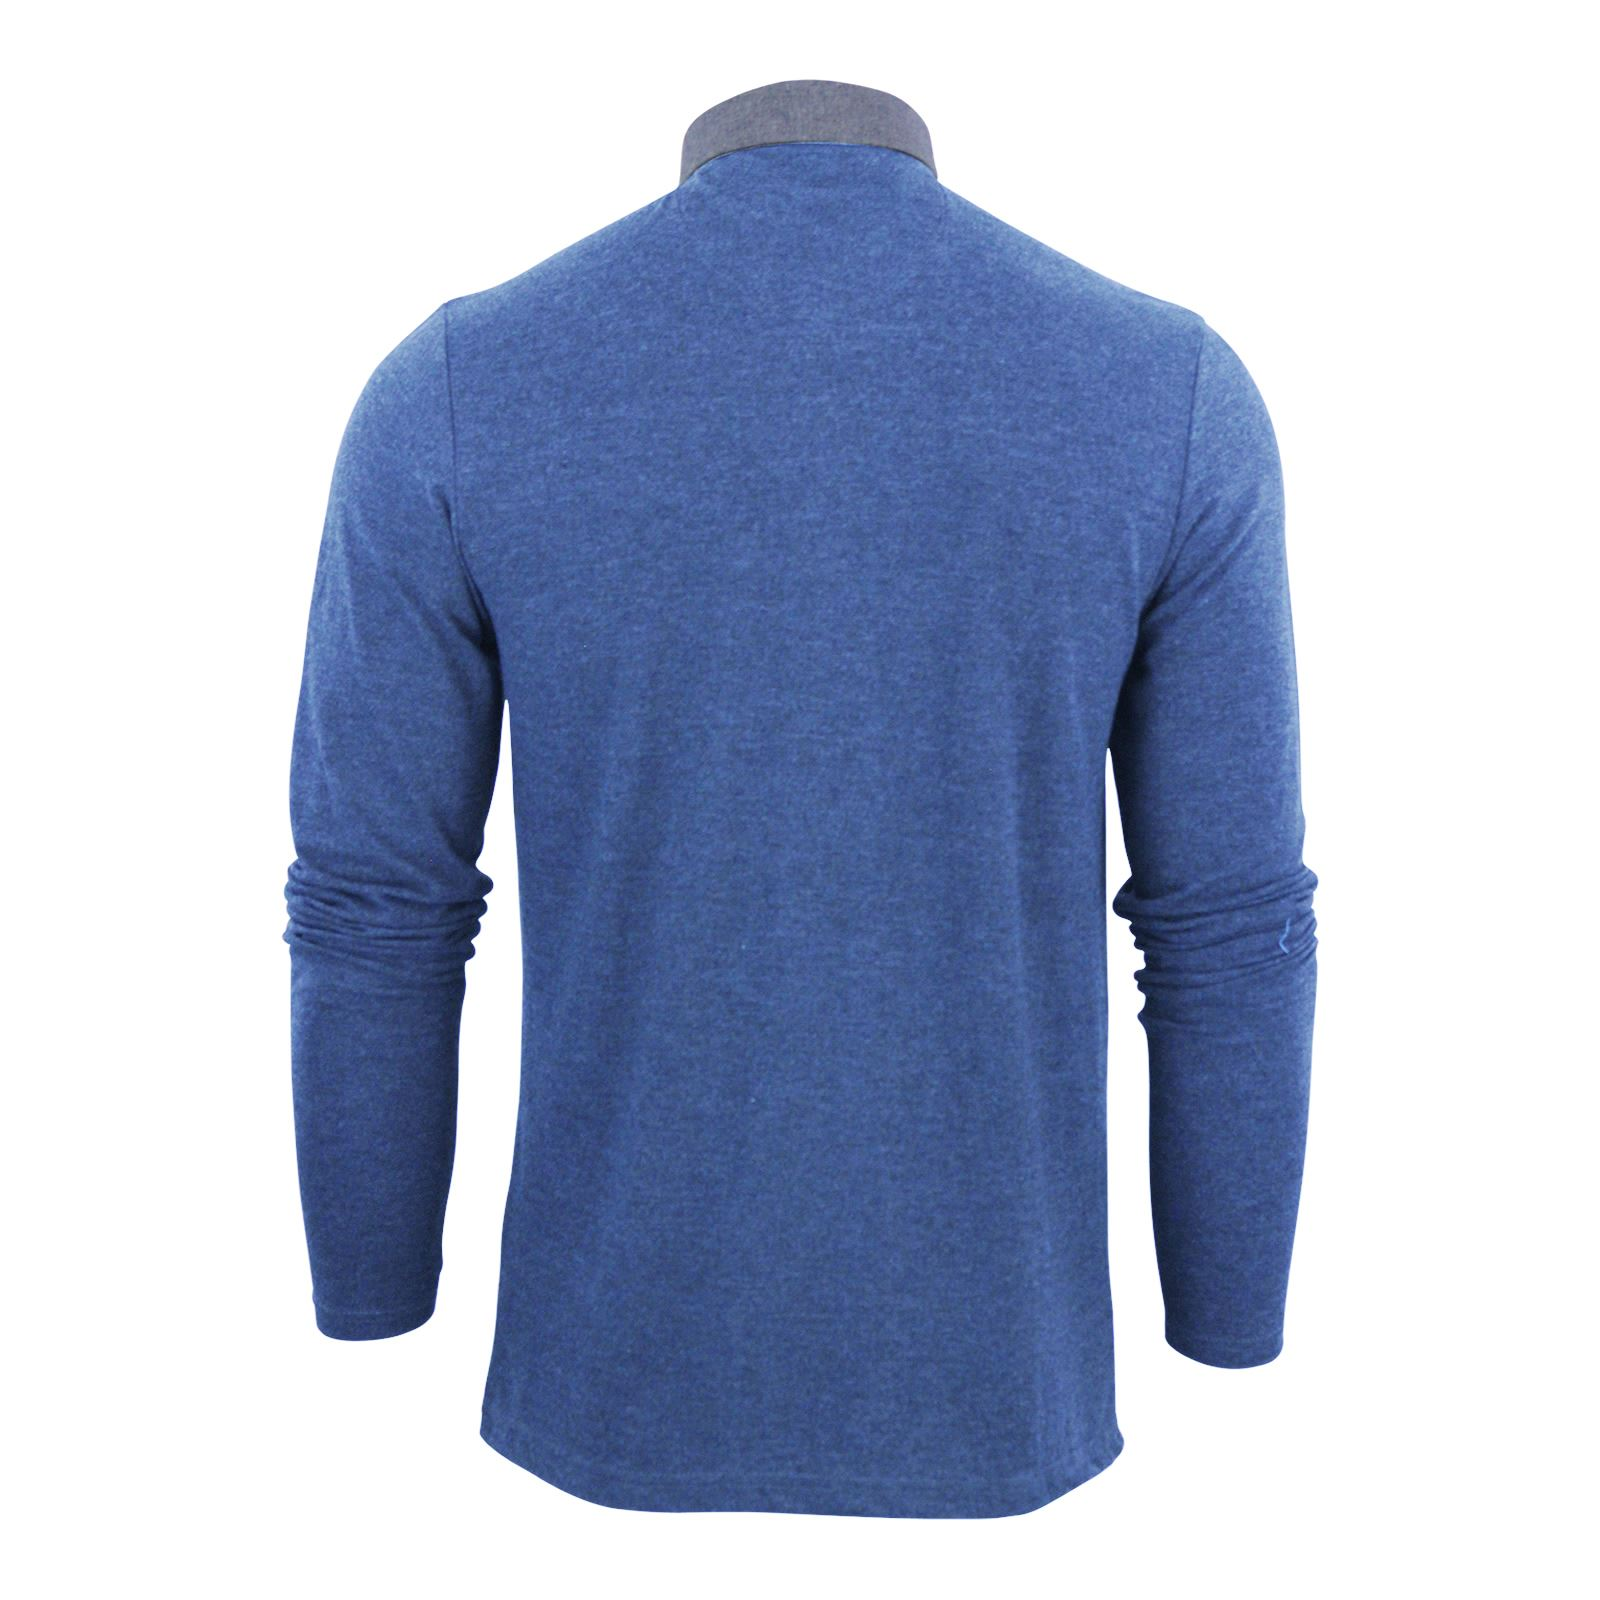 Mens-Polo-Shirt-Brave-Soul-Long-Sleeve-Collared-Top-In-Various-Styles thumbnail 48